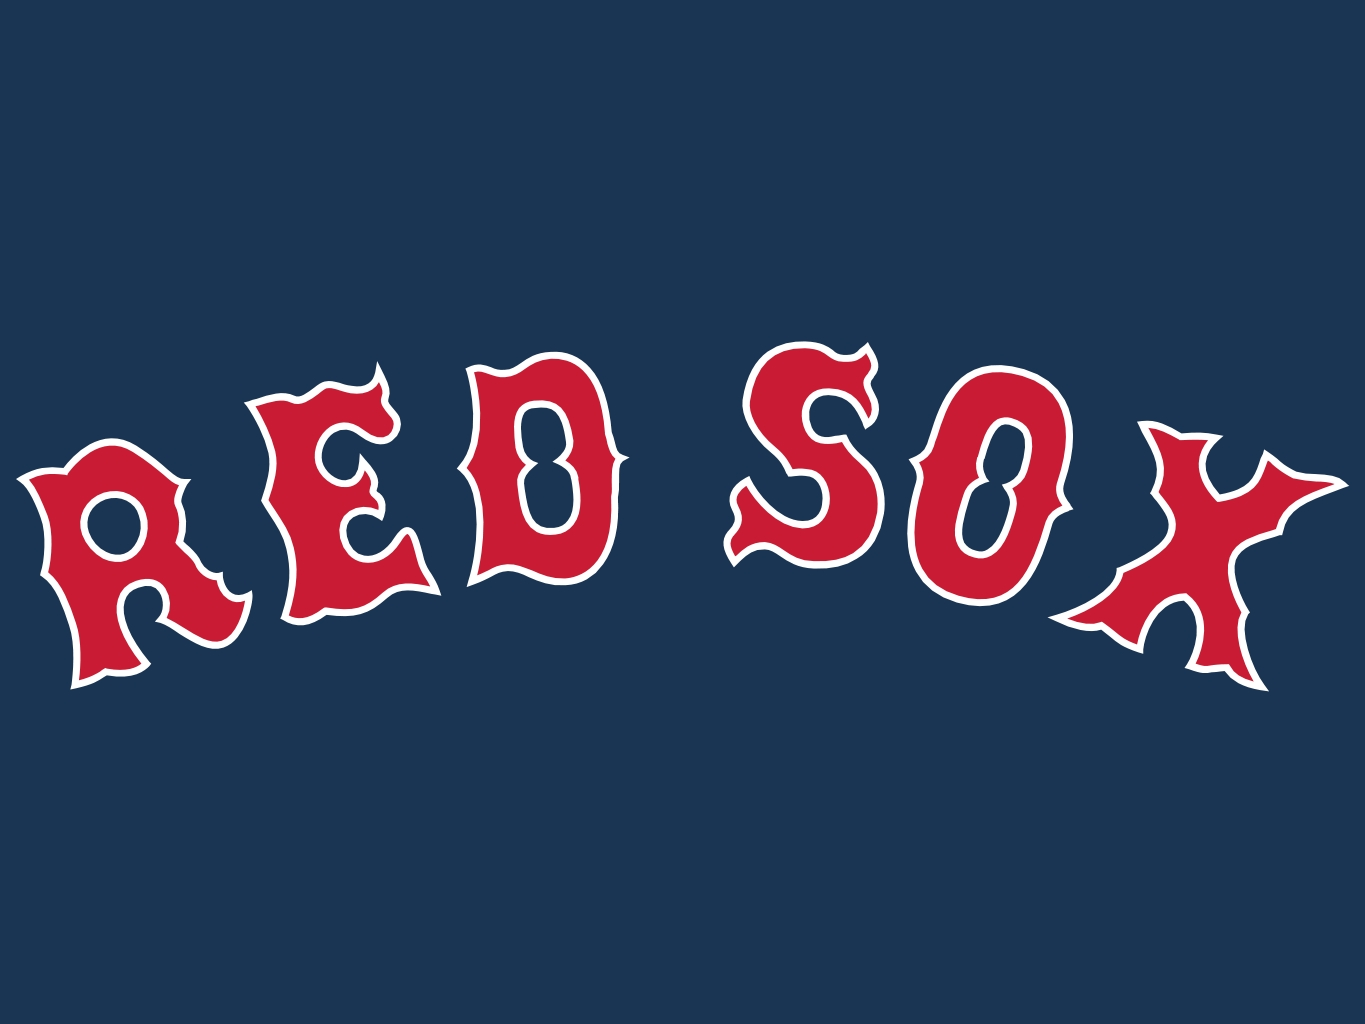 Red Sox Wallpaper 1920x1080 Wallpapers Images amp Pictures 1365x1024